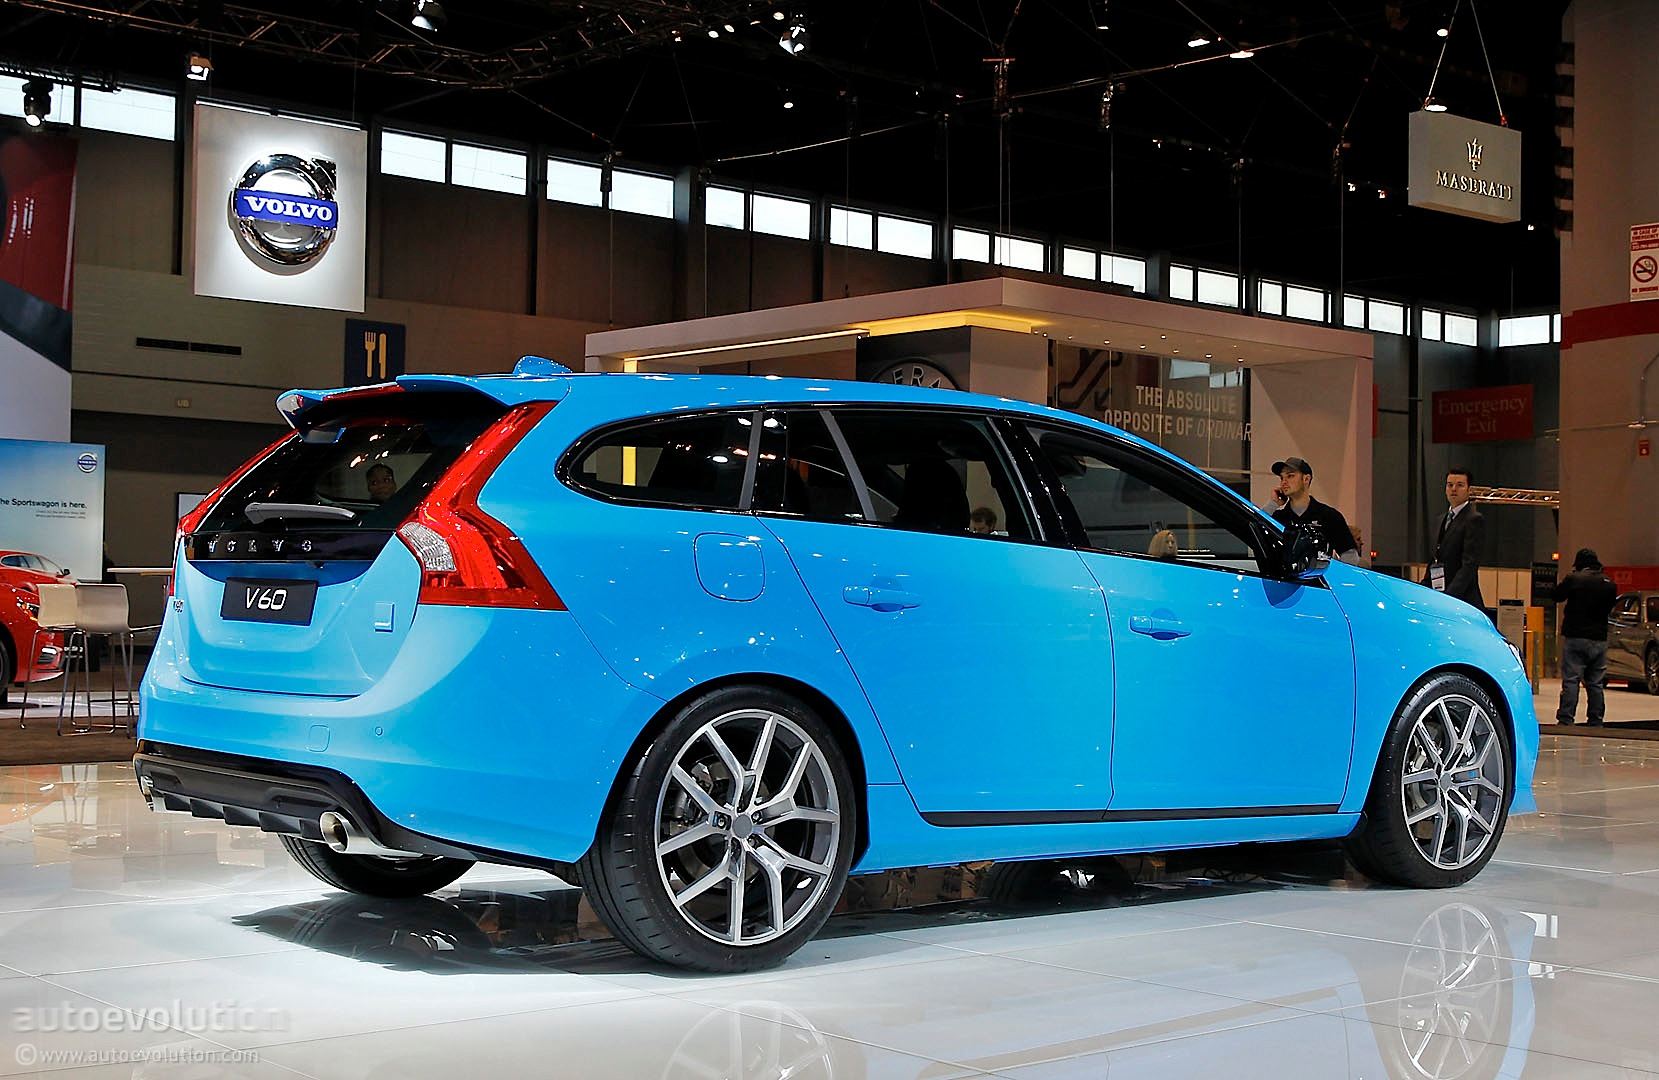 Volvo V60 Polestar Is A Blue Wagon In Chicago Live Photo